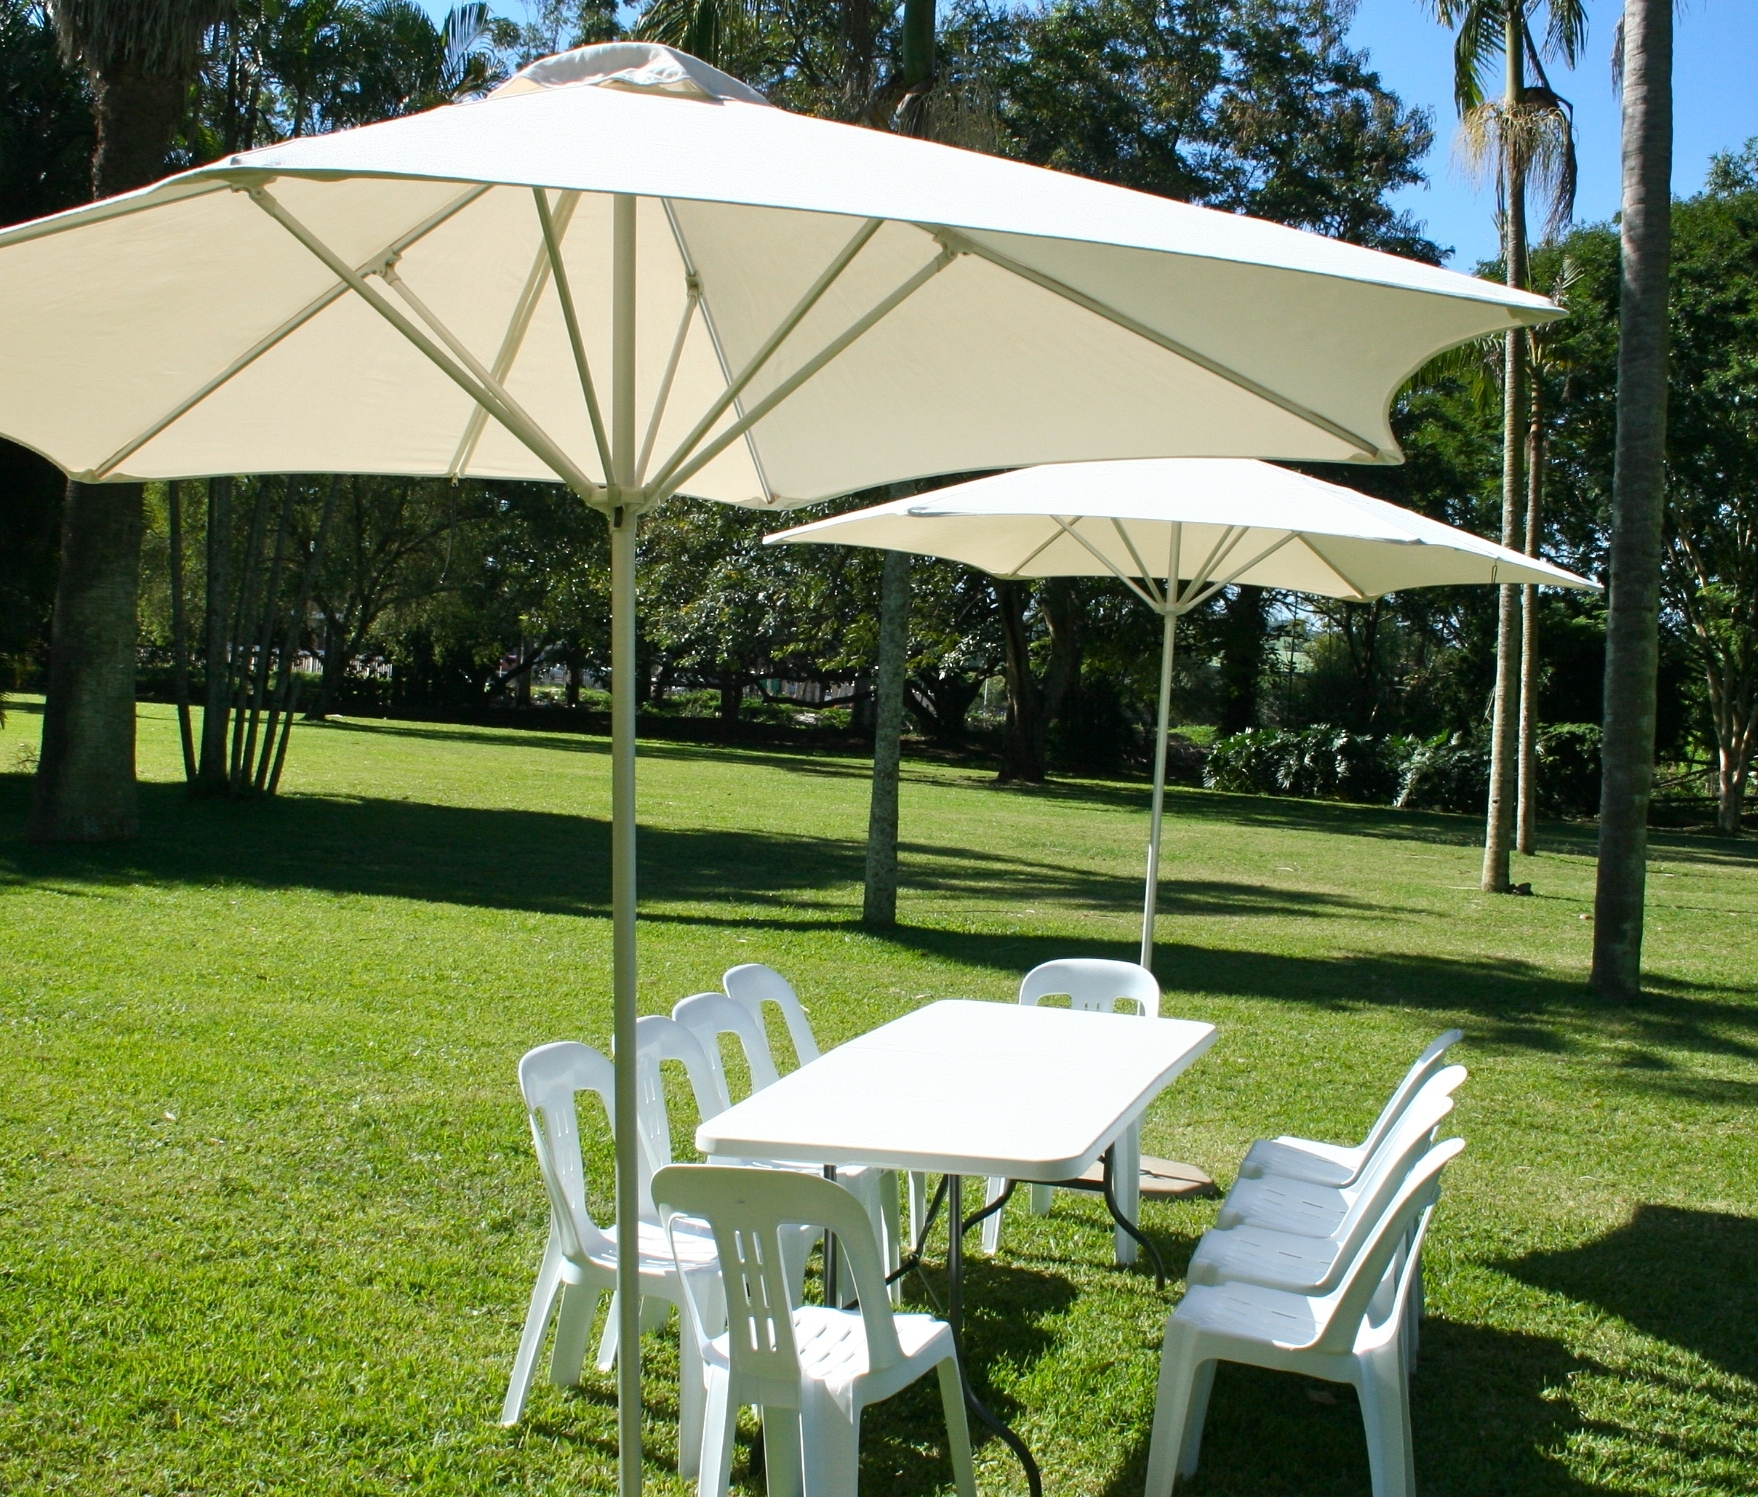 Patio Deck Umbrellas With Most Up To Date Outdoor Patio Umbrella Rental Umbrella Hire (Gallery 14 of 20)